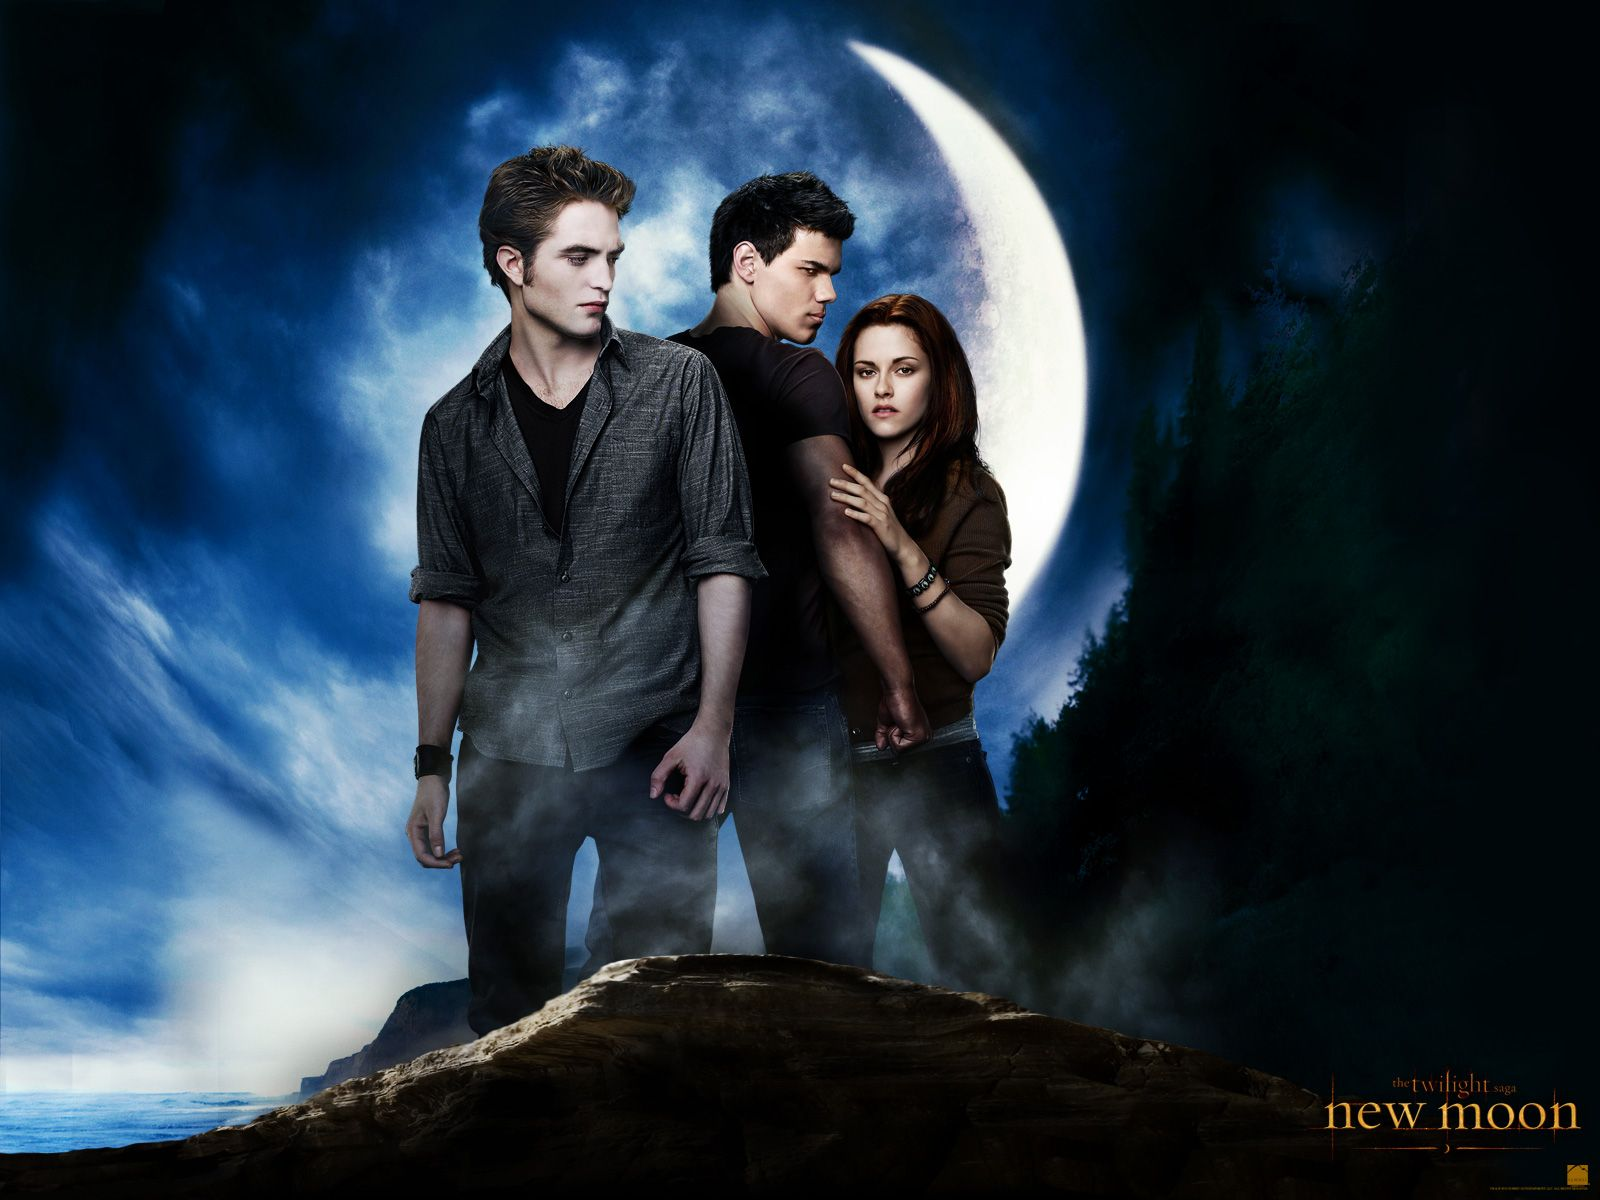 5 Different Hq Twilight Wallpapers Including Japan Limited Designs Twilight Pictures Vampire Twilight Twilight Saga New Moon